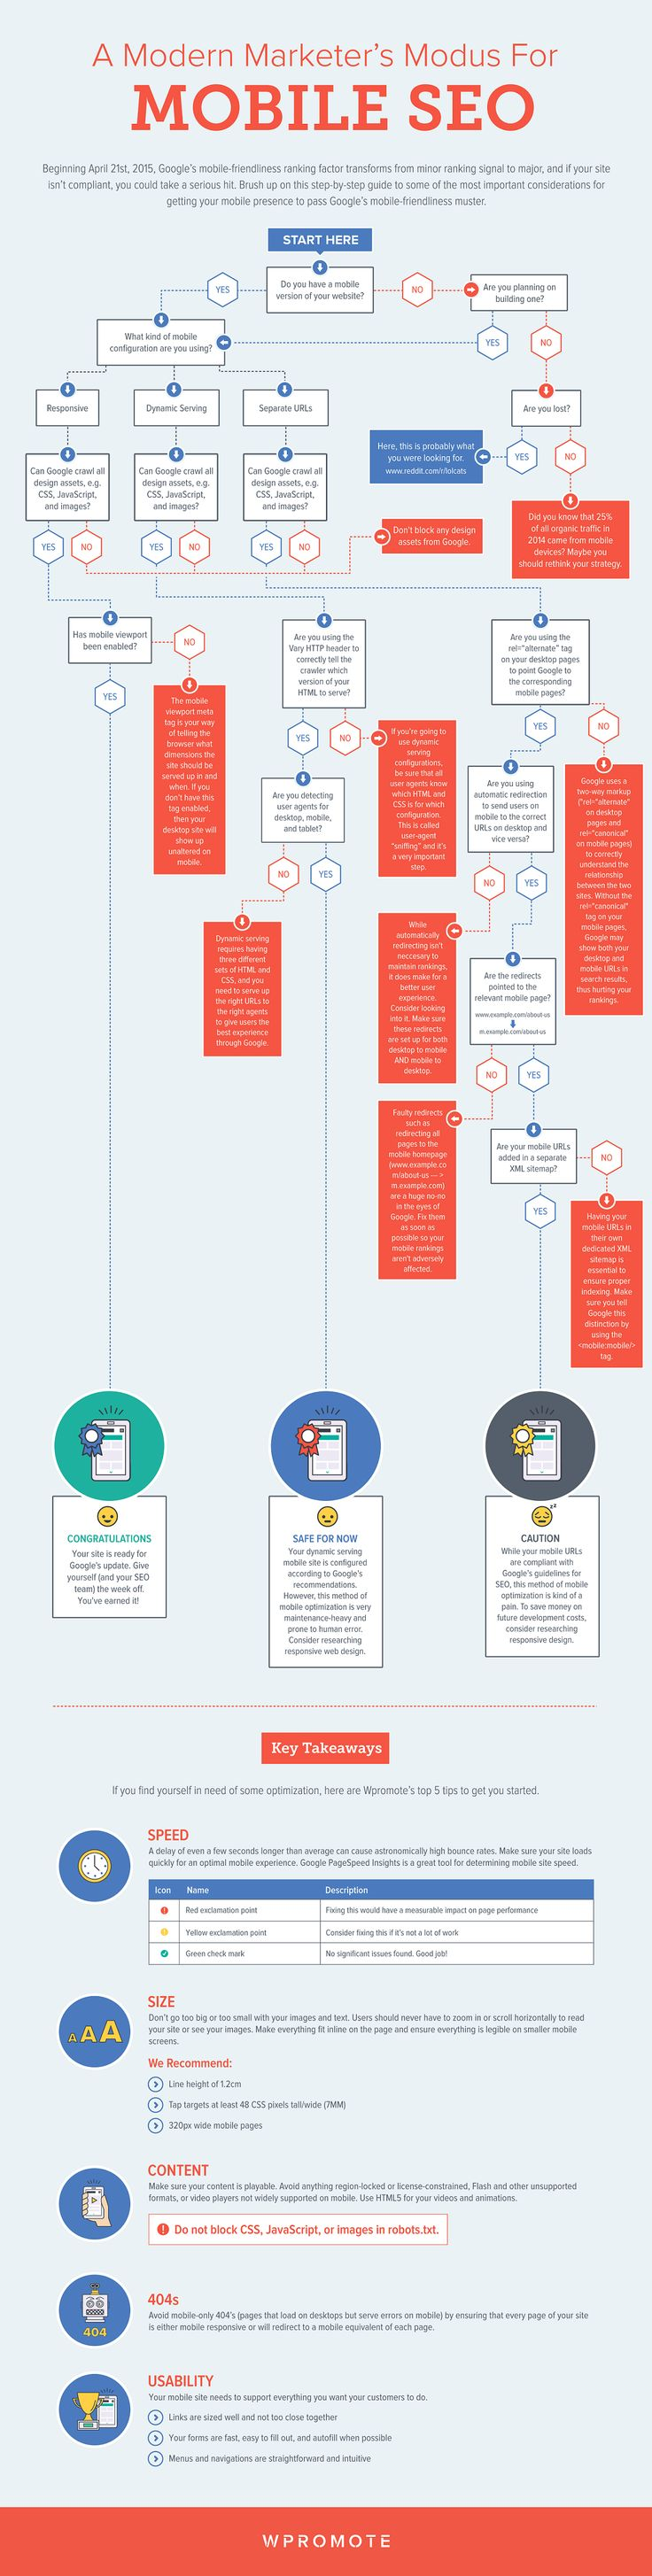 A Modern Marketer's Modus for Mobile SEO #infographic #SEO #Mobile